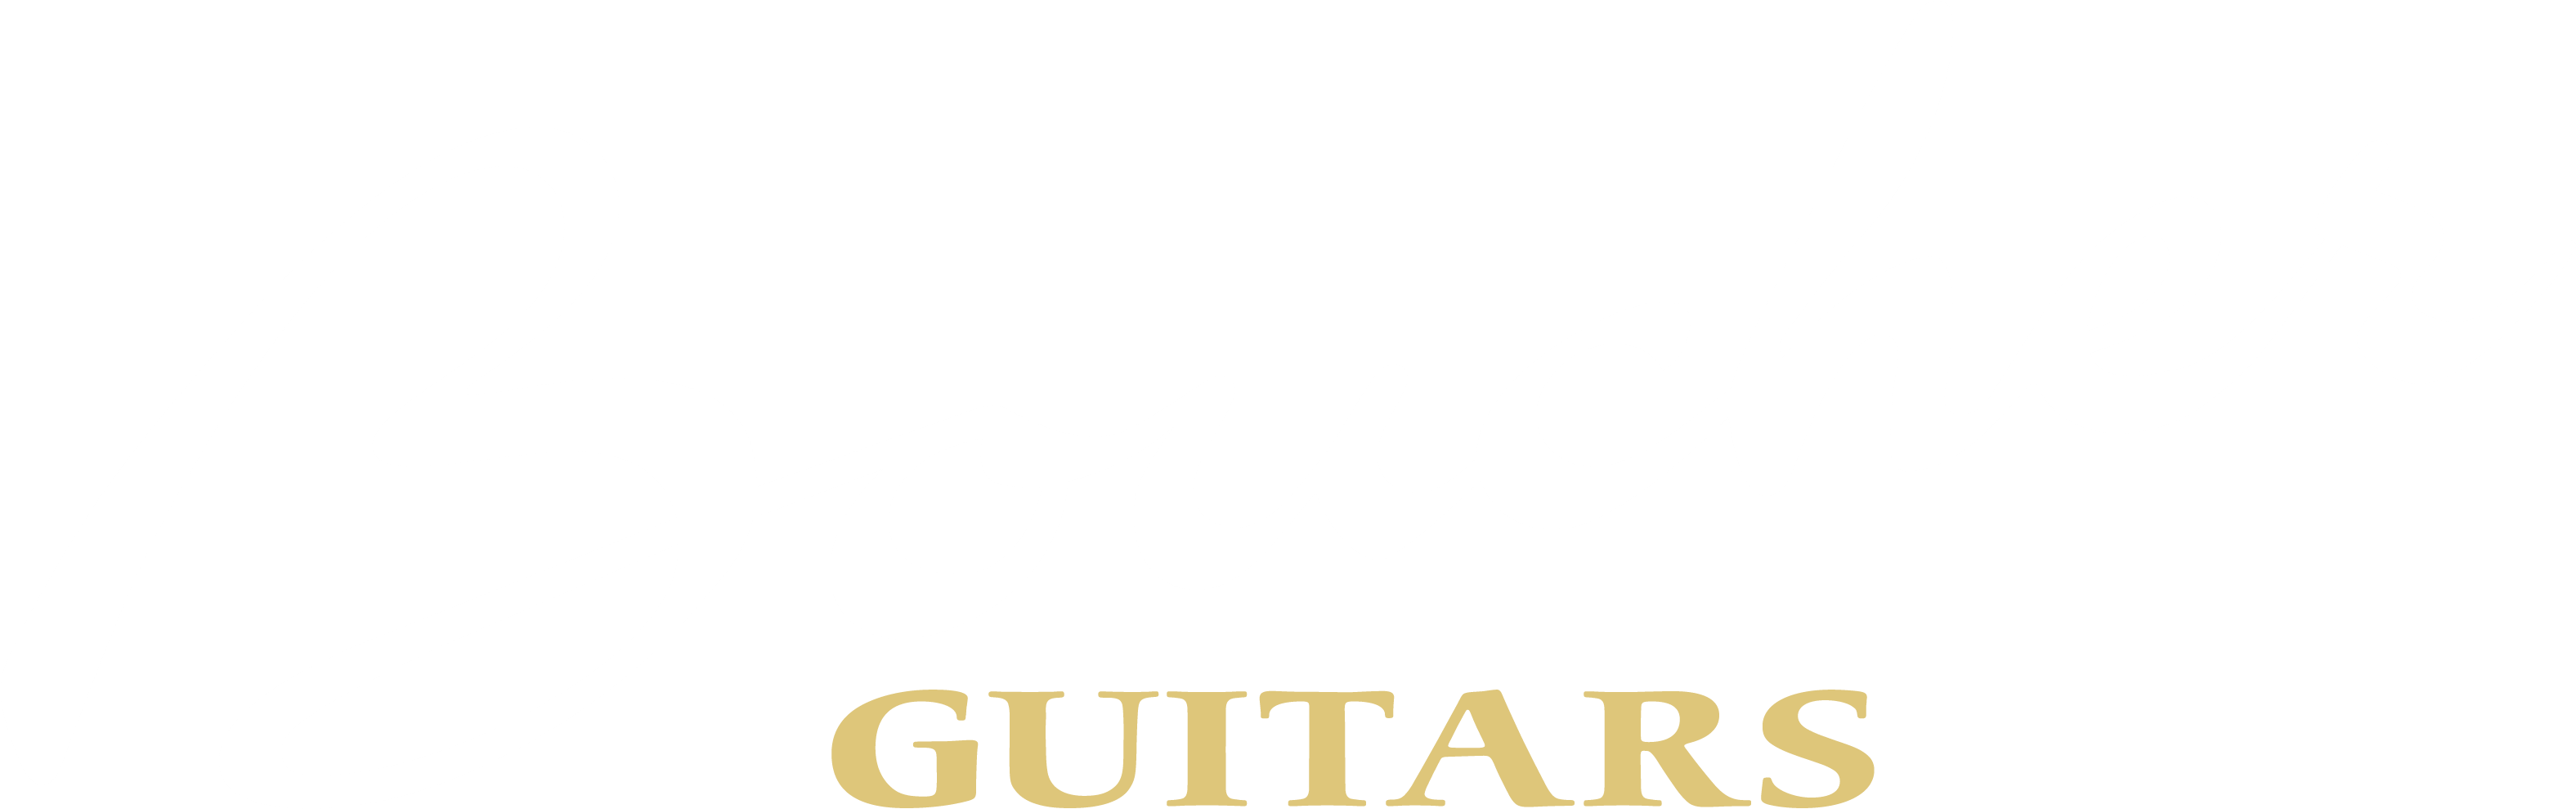 Boucher Guitars